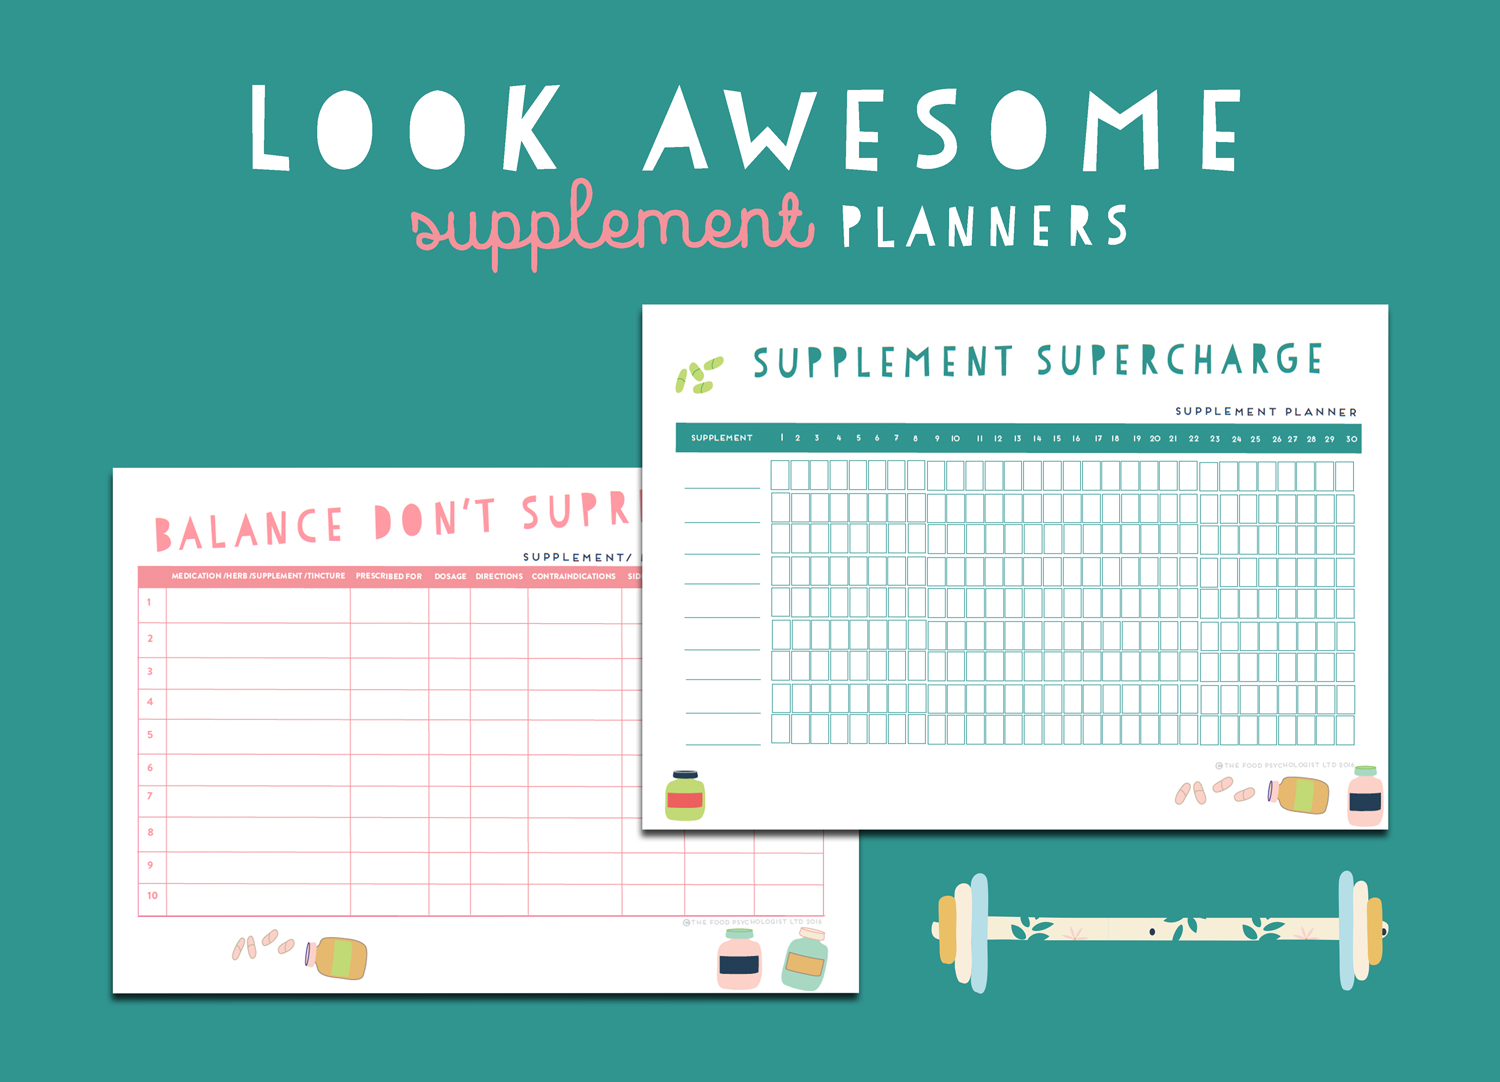 Look Awesome Supplement Planners